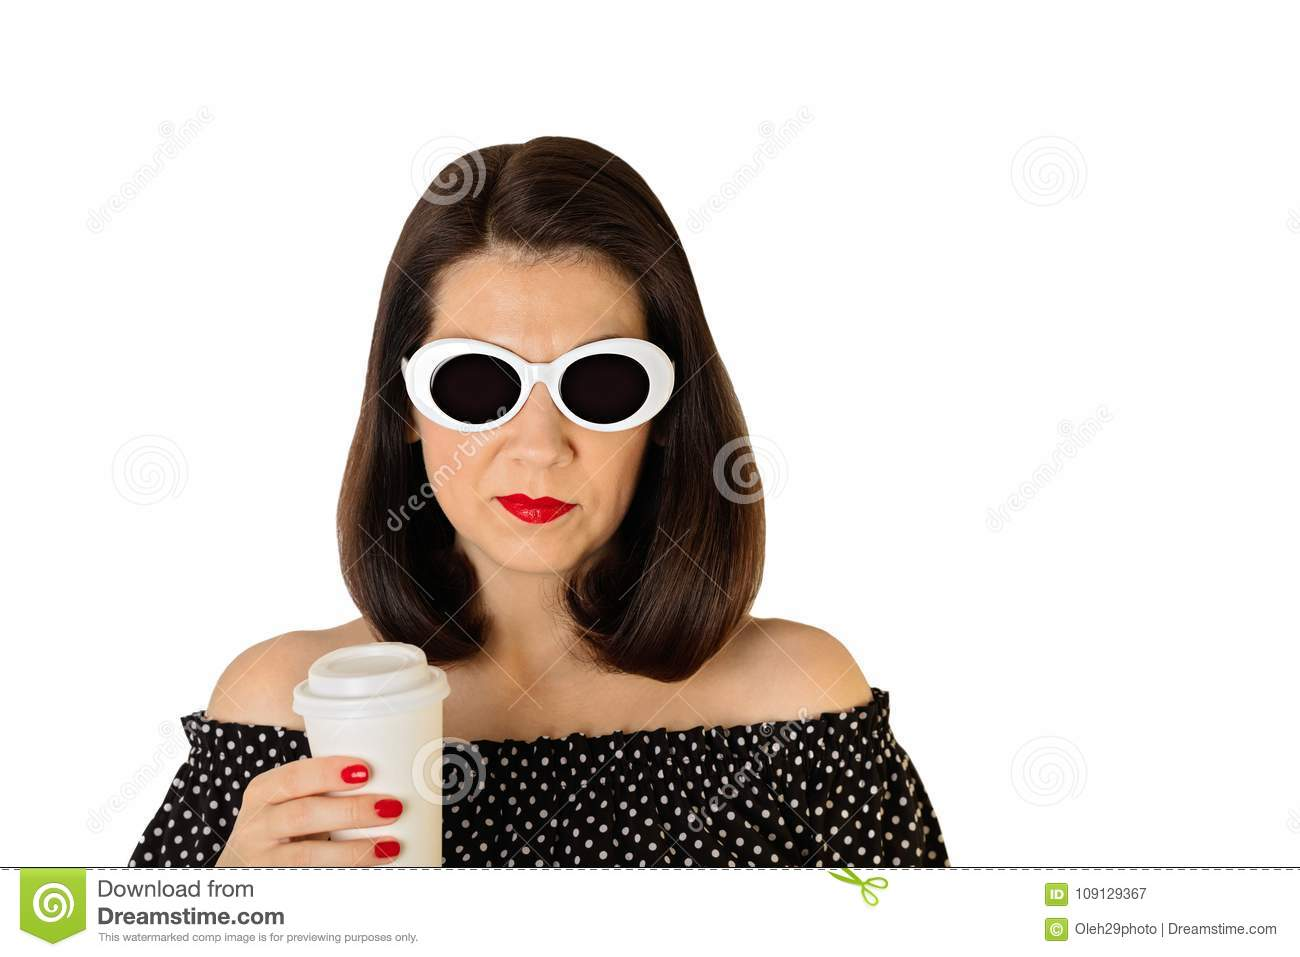 Woman in a black and white dress with polka dots and white sunglasses holding a glass of coffee.